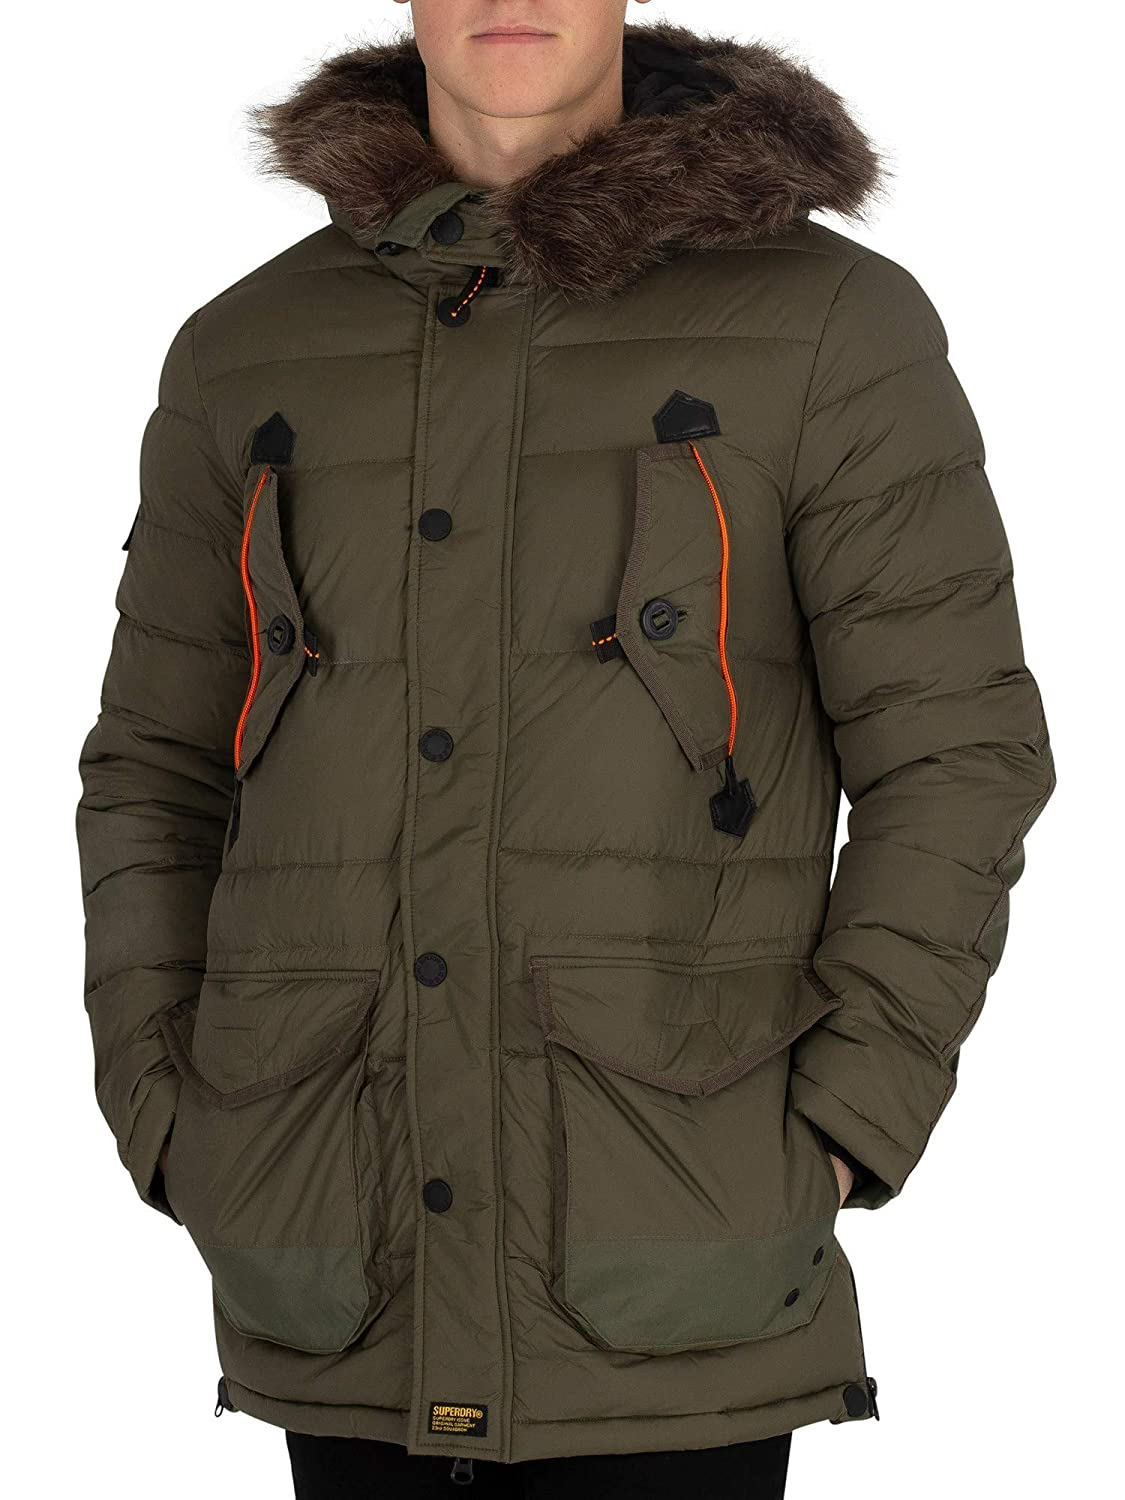 Superdry Mens Chinook Parka Jacket, Green at Amazon Mens ...